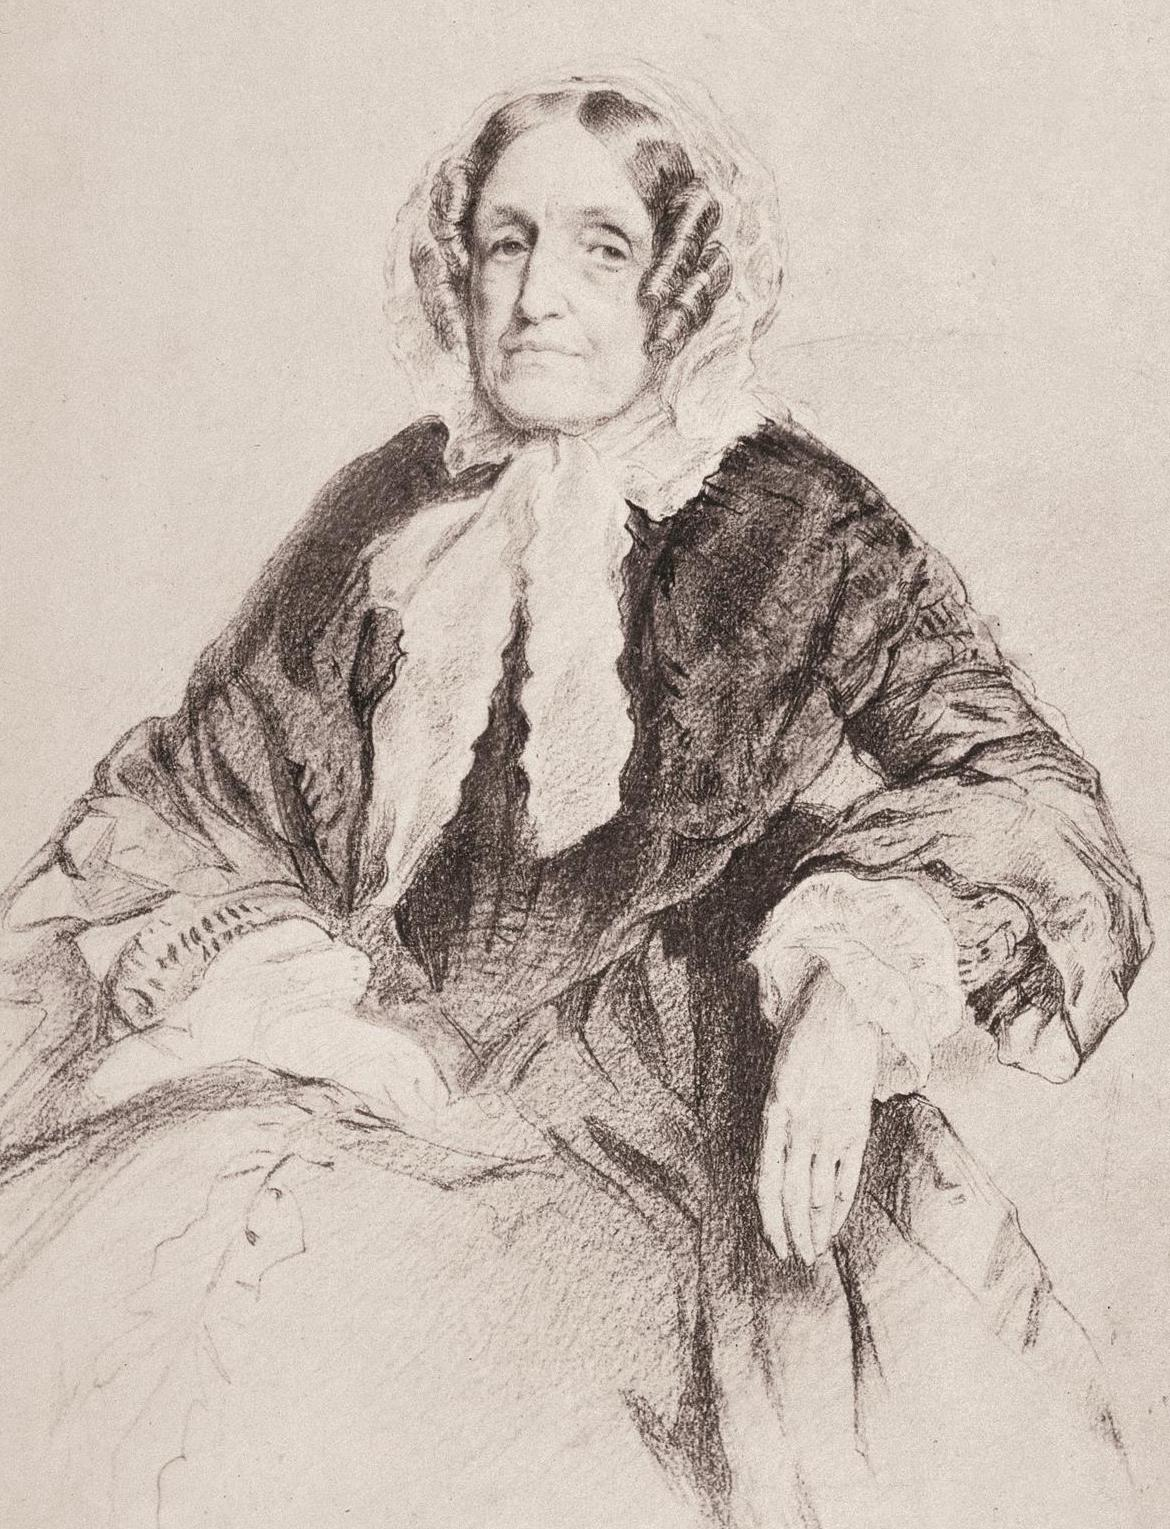 Pen and ink portrait of older woman